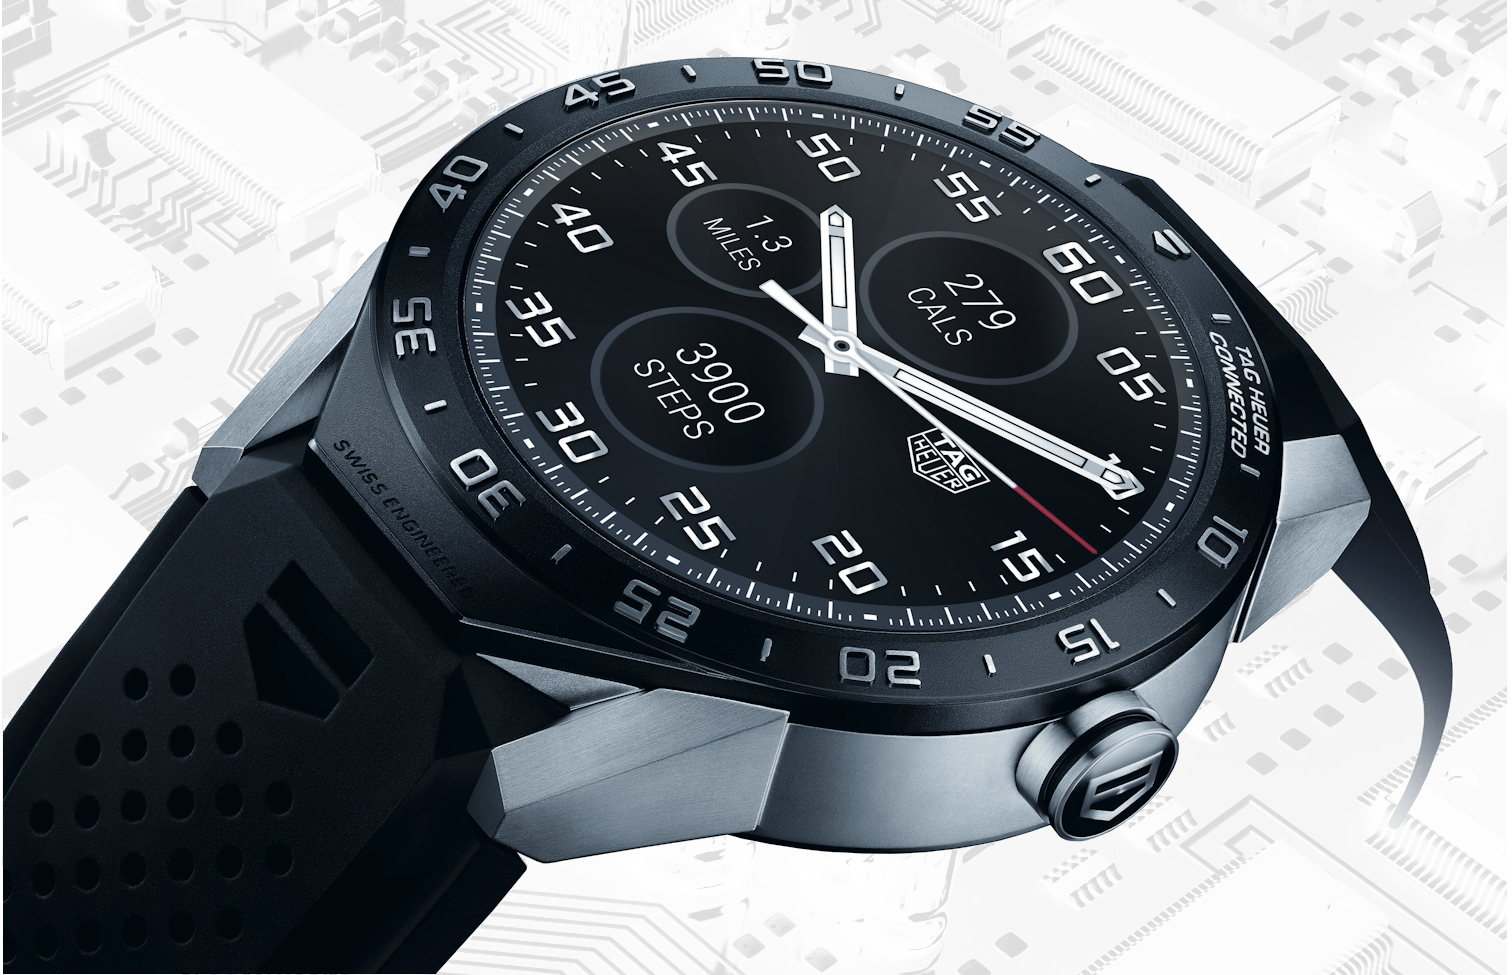 the TAG Heuer Connected represents a new age for luxury Swiss watchmaking.